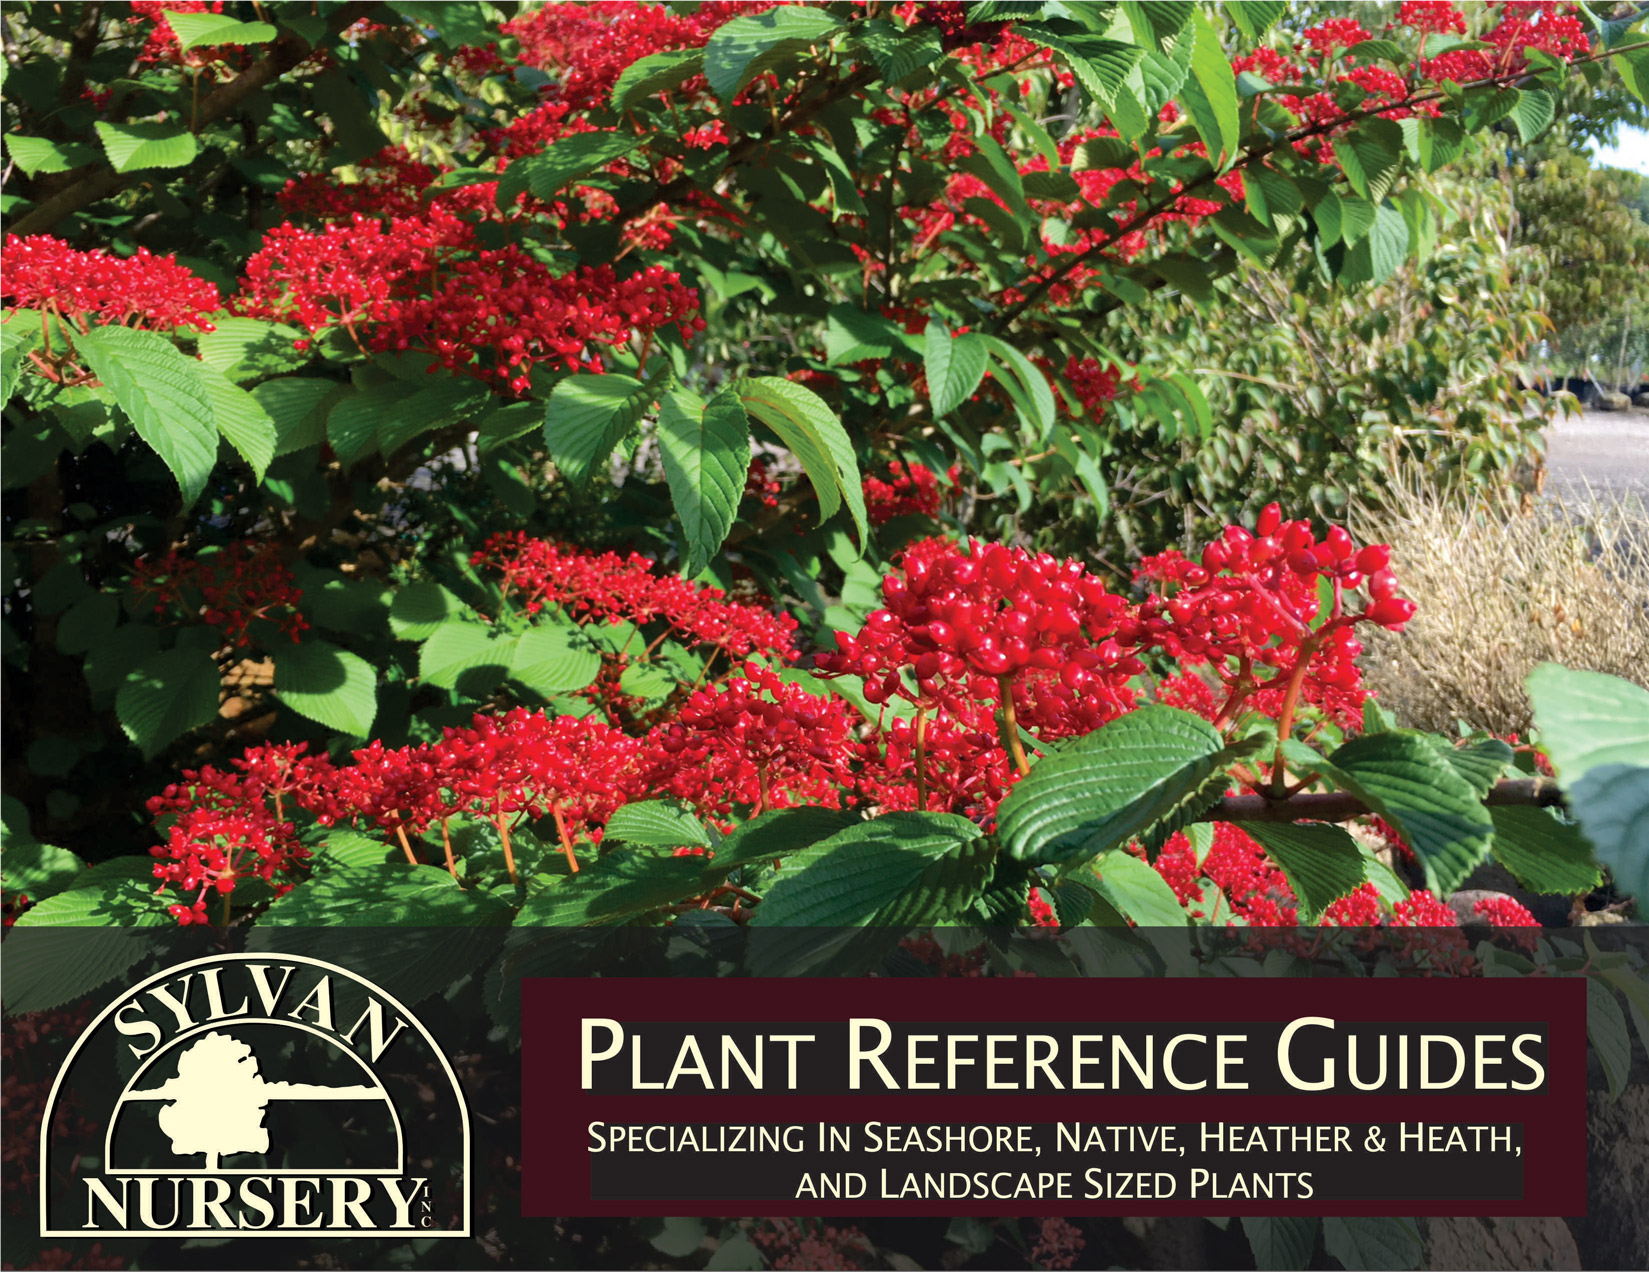 Plant Reference Guide - Click to View